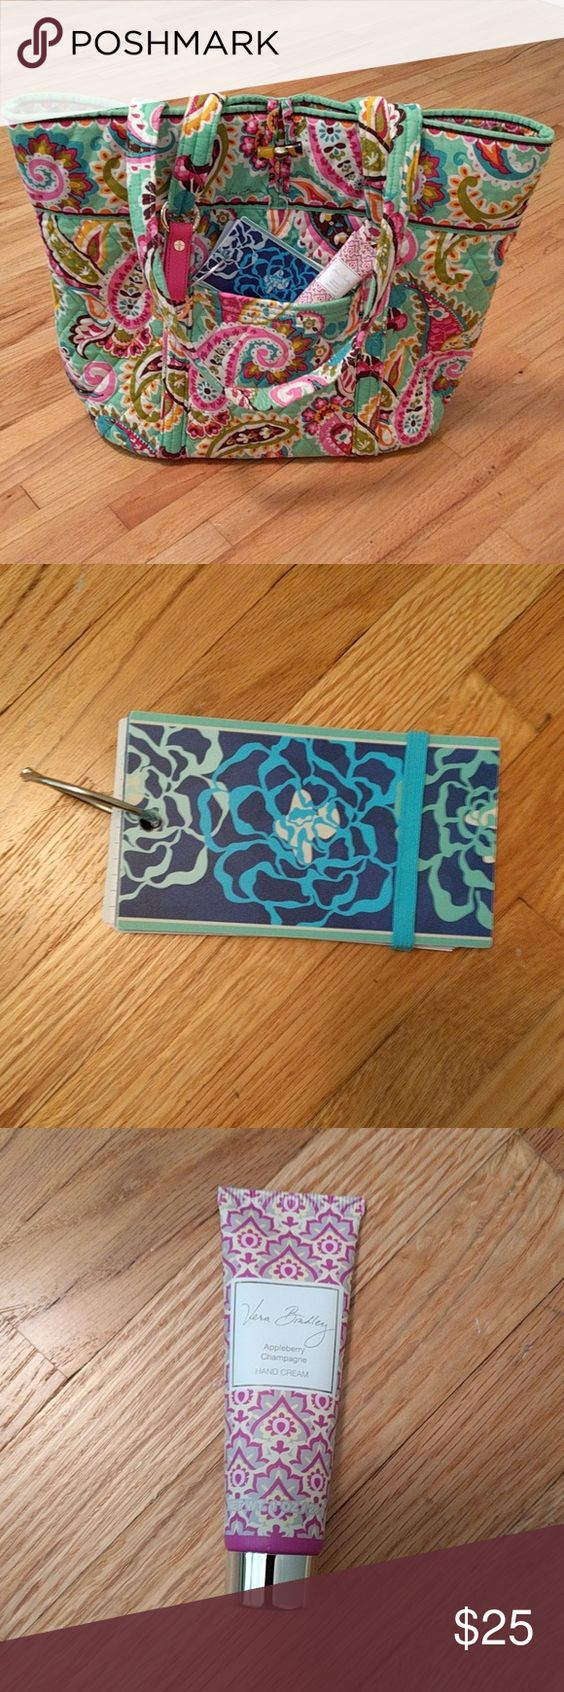 Vera Bradley Accessories Katalina Blue print study index cards with four dividers. Divider tabs look worn. Other than that it is in good condition. Travel size Appleberry Champagne scent hand cream. And pink leather keychain. On one end of the keychain it has a hook you can use to attach to a bag. The other end you could use for your keys. Vera Bradley Accessories